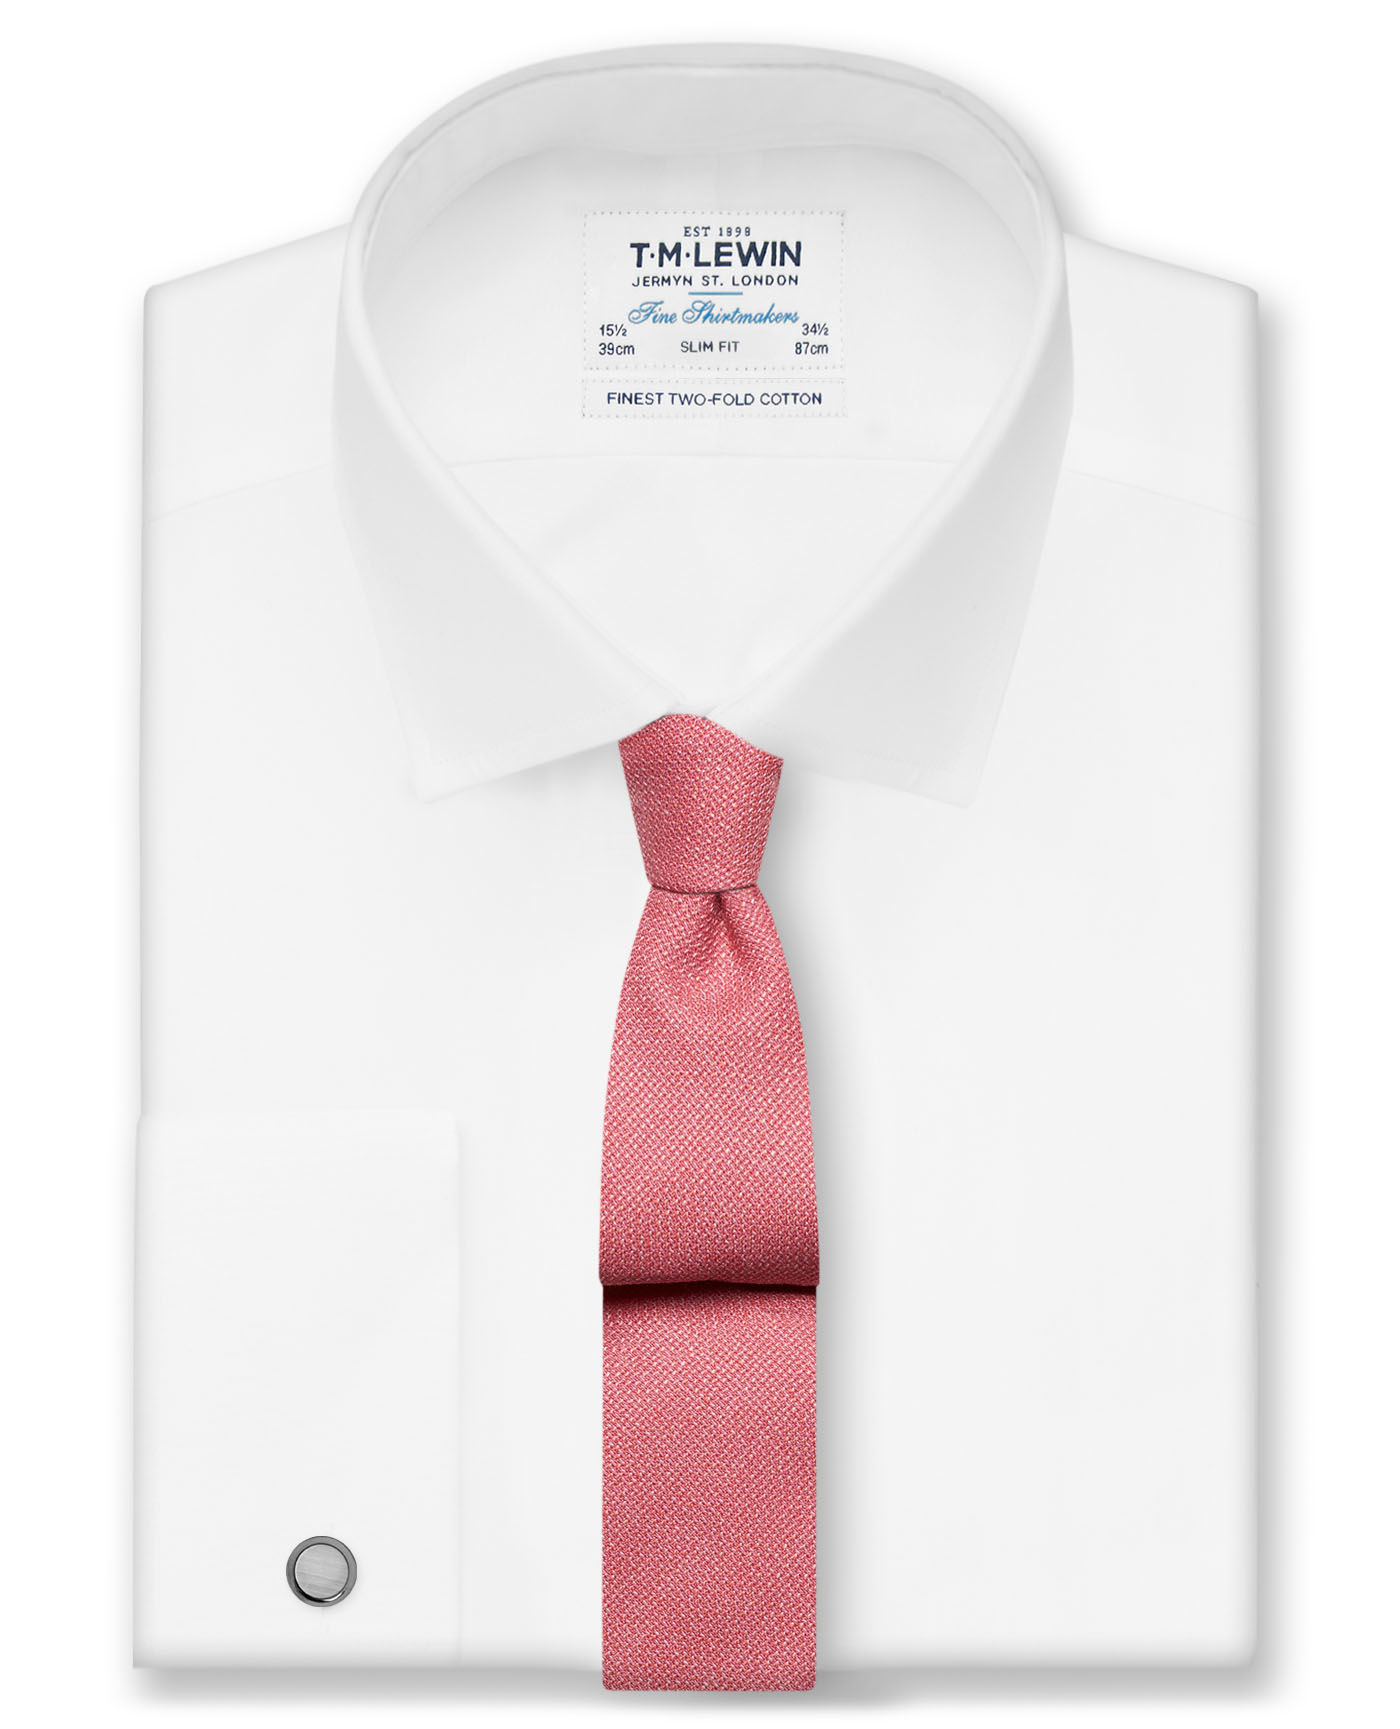 T.M.Lewin White Poplin Slim Fit Double Cuff Shirt